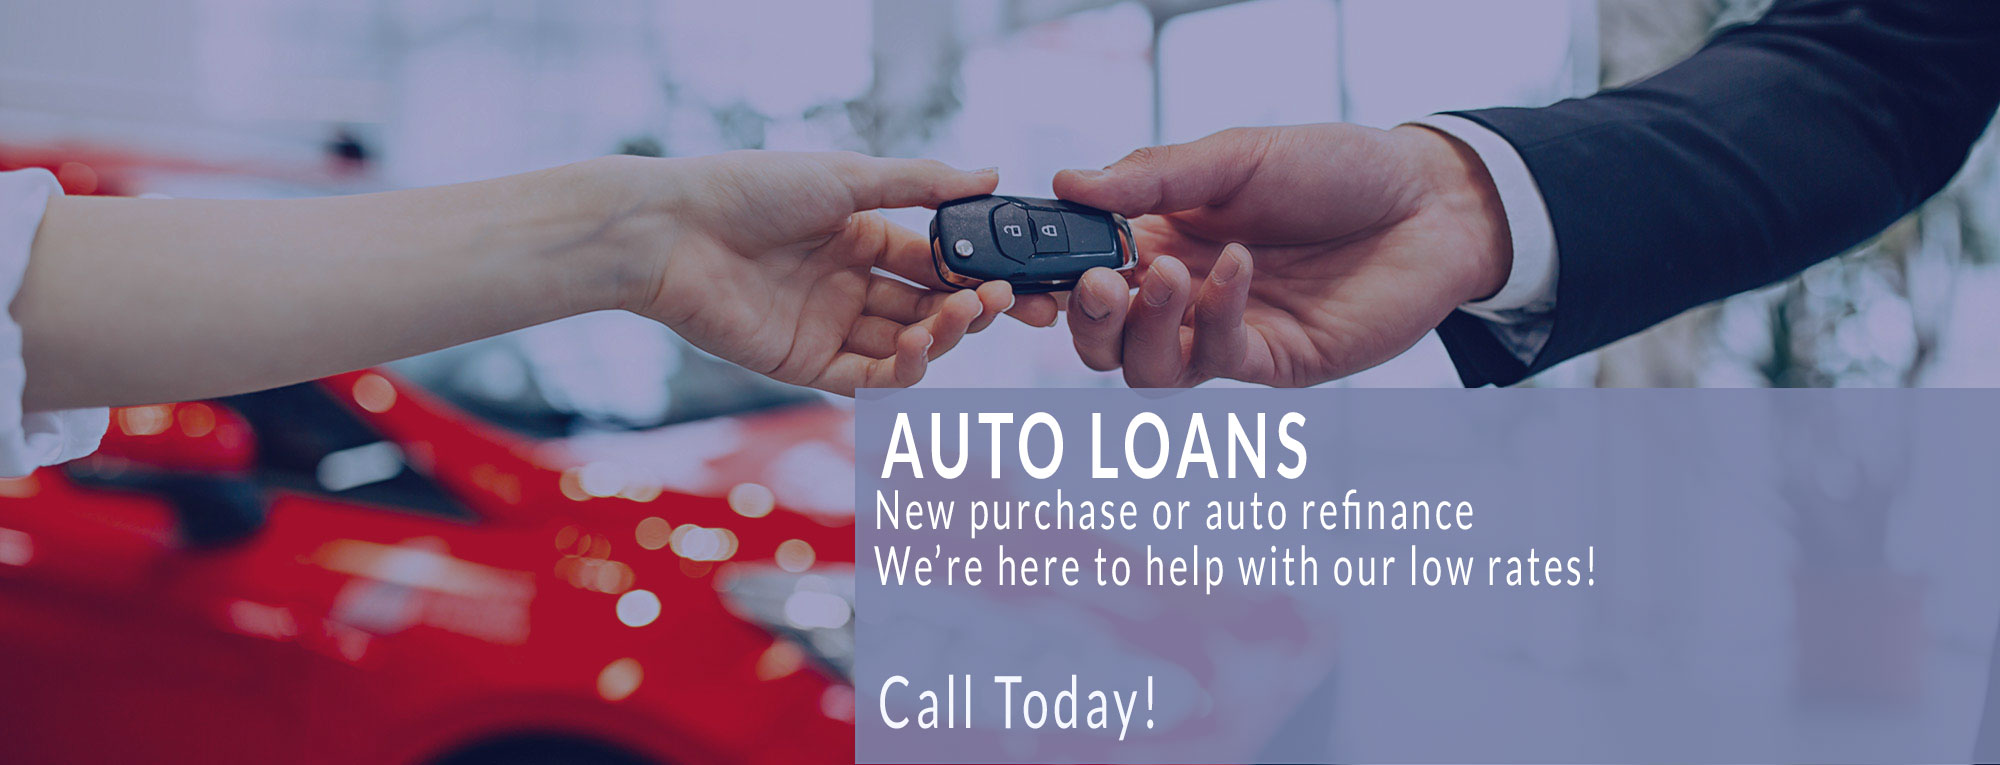 Auto Loans - New purchase or auto refinance. We're here to help with our low rates! Call Today!